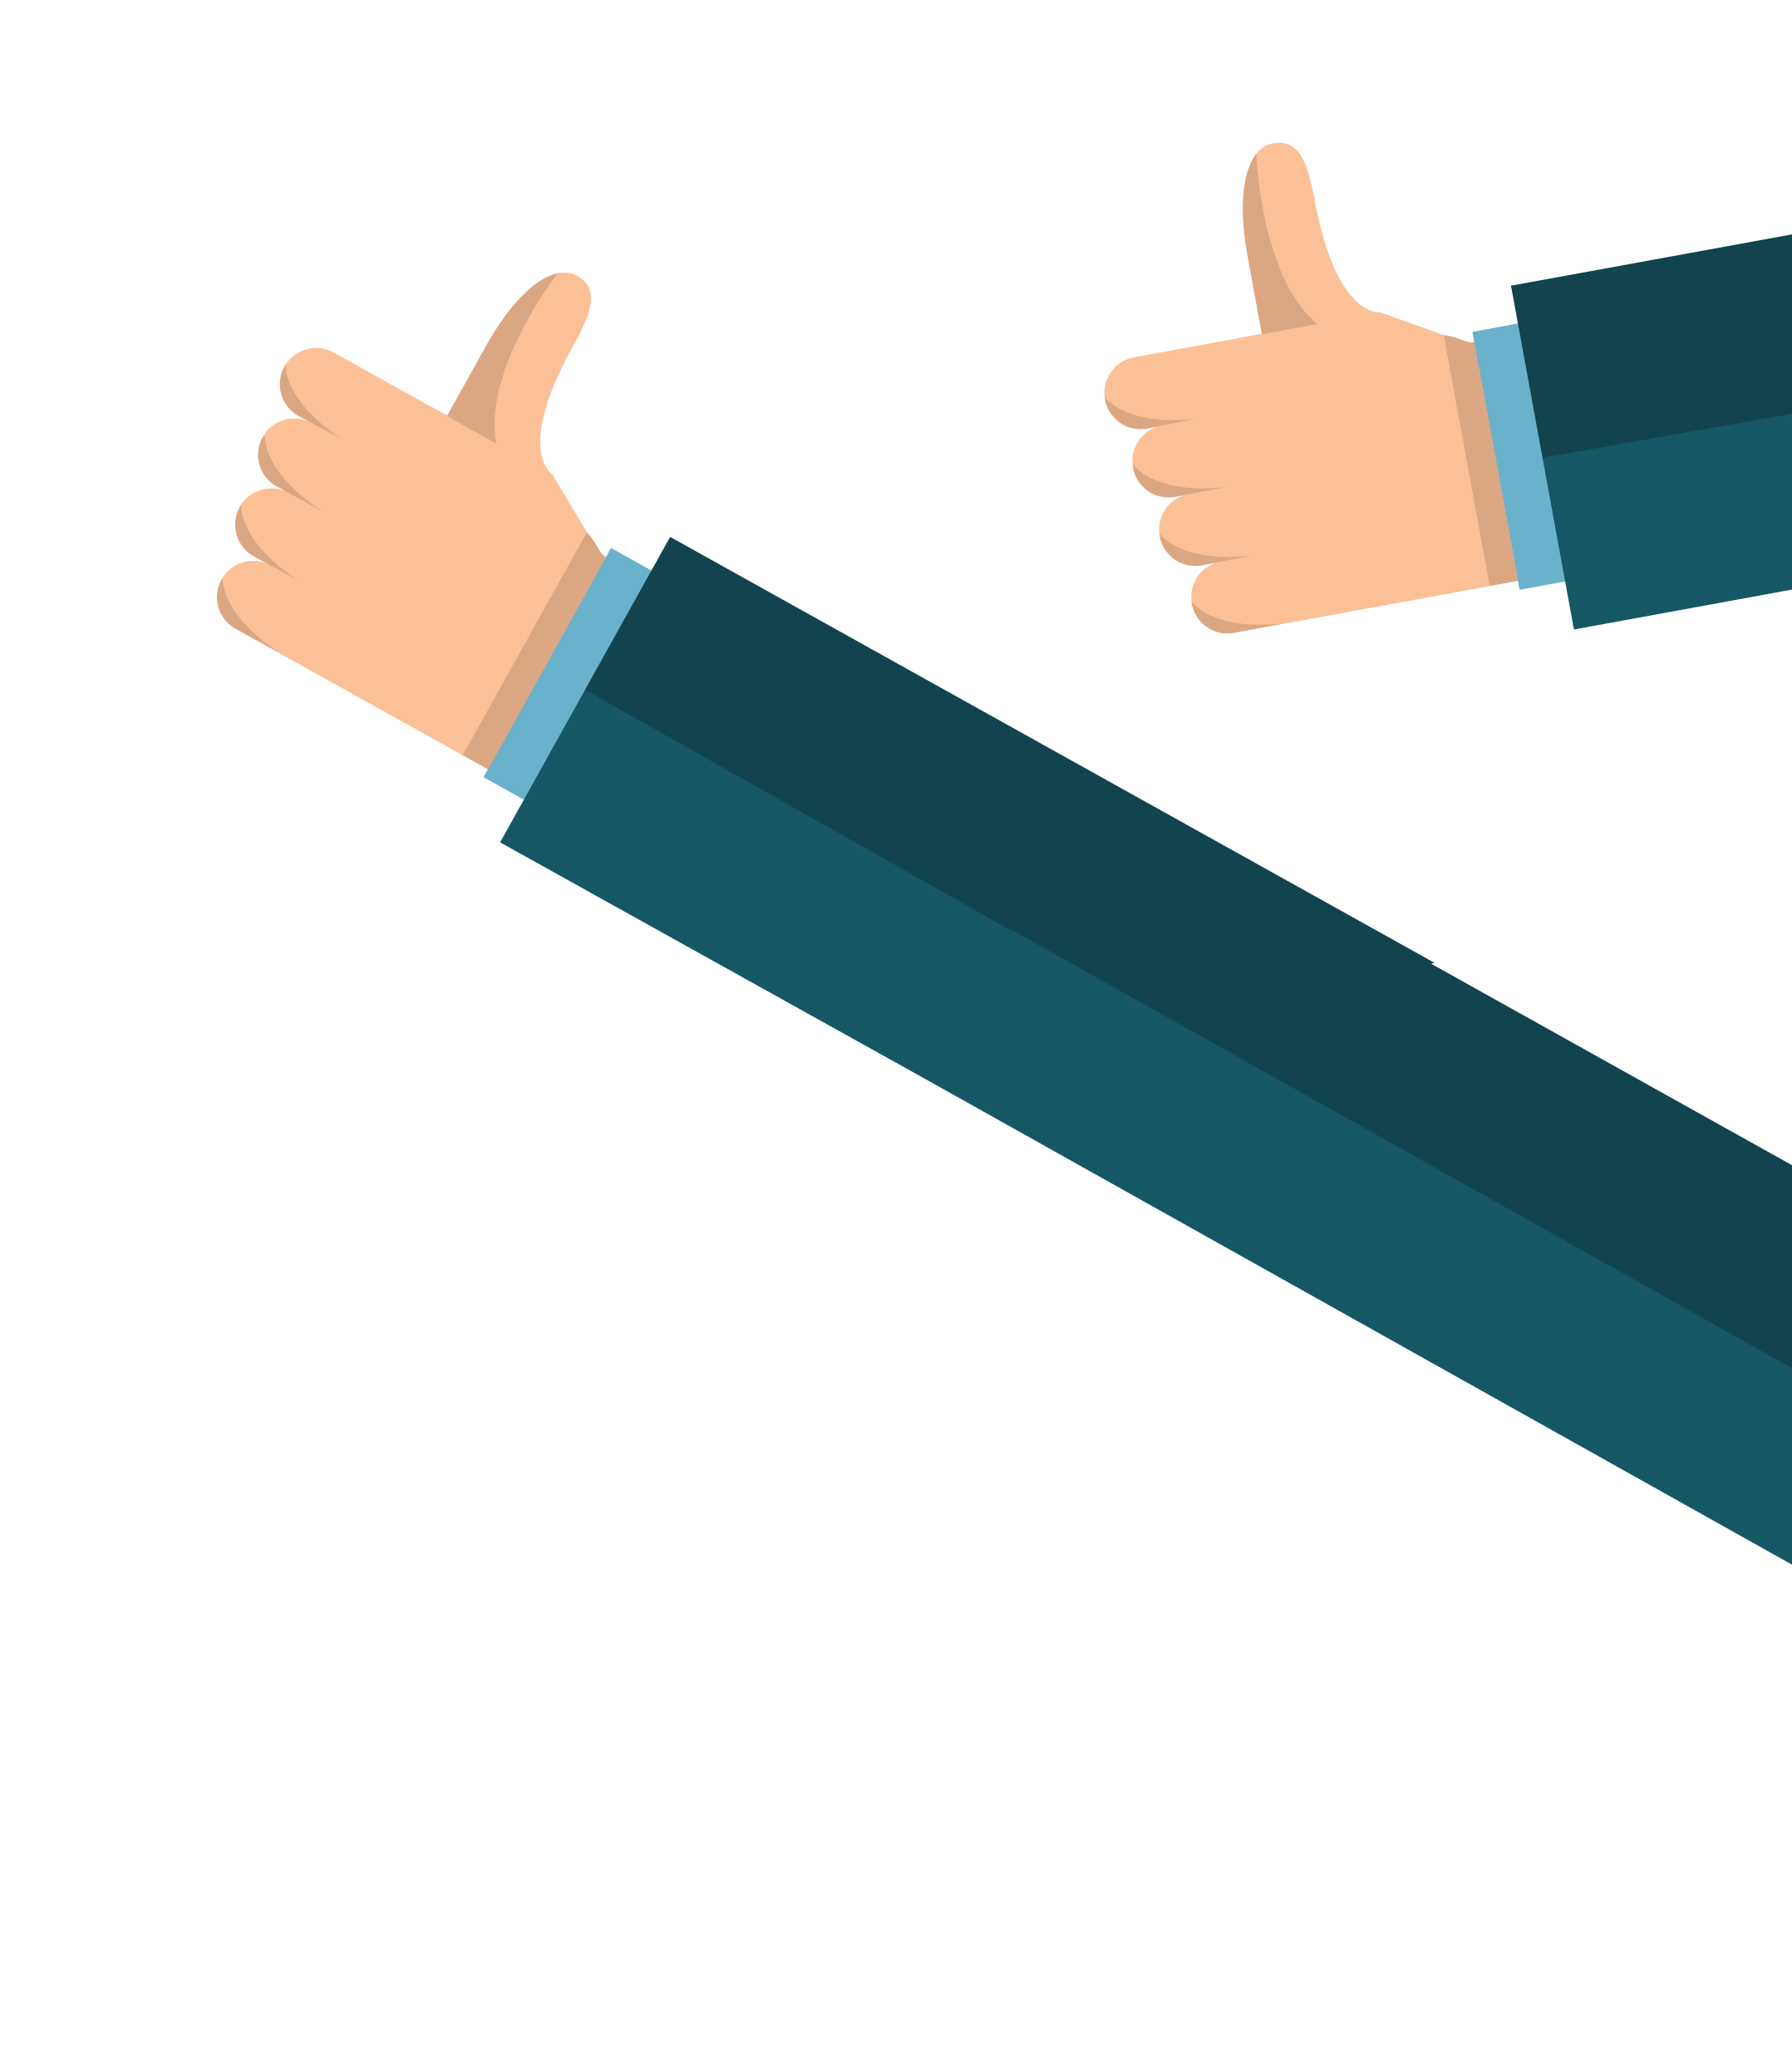 Aanbeveling Thumbs Up